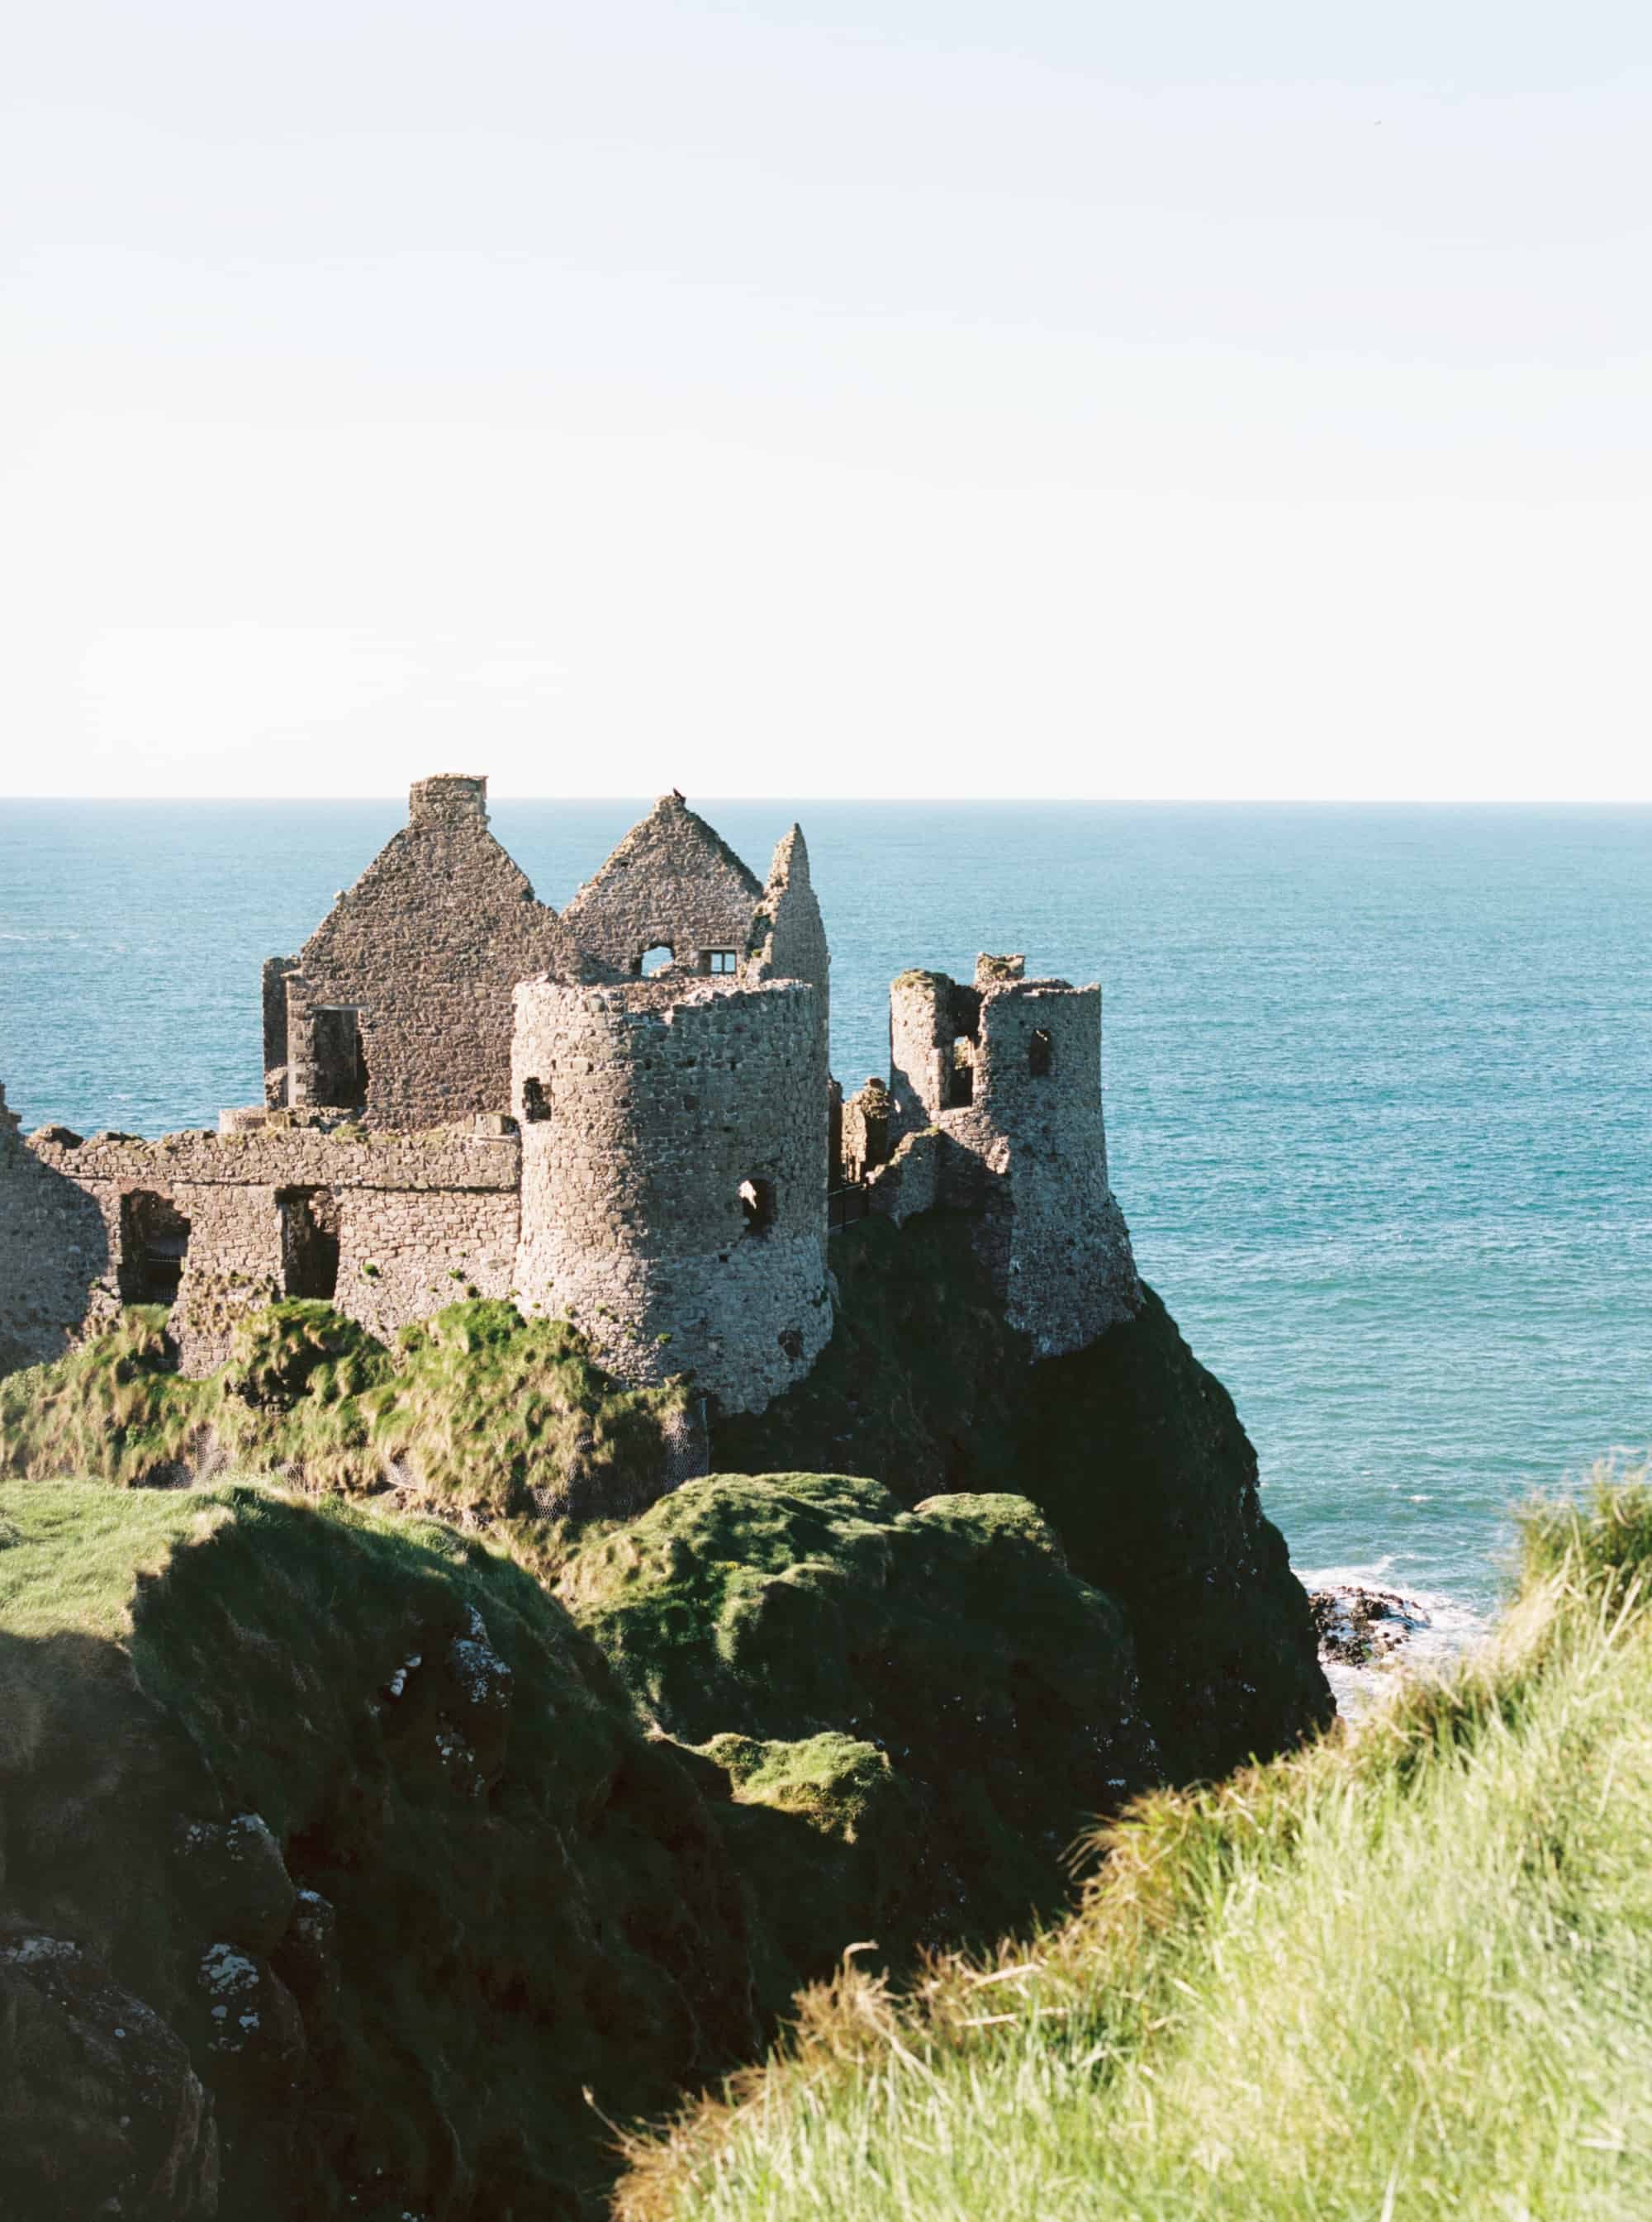 Dunluce Castle in County Antrim, Northern Ireland photographed on film by Kate Lamb of Wild in Love Photo.